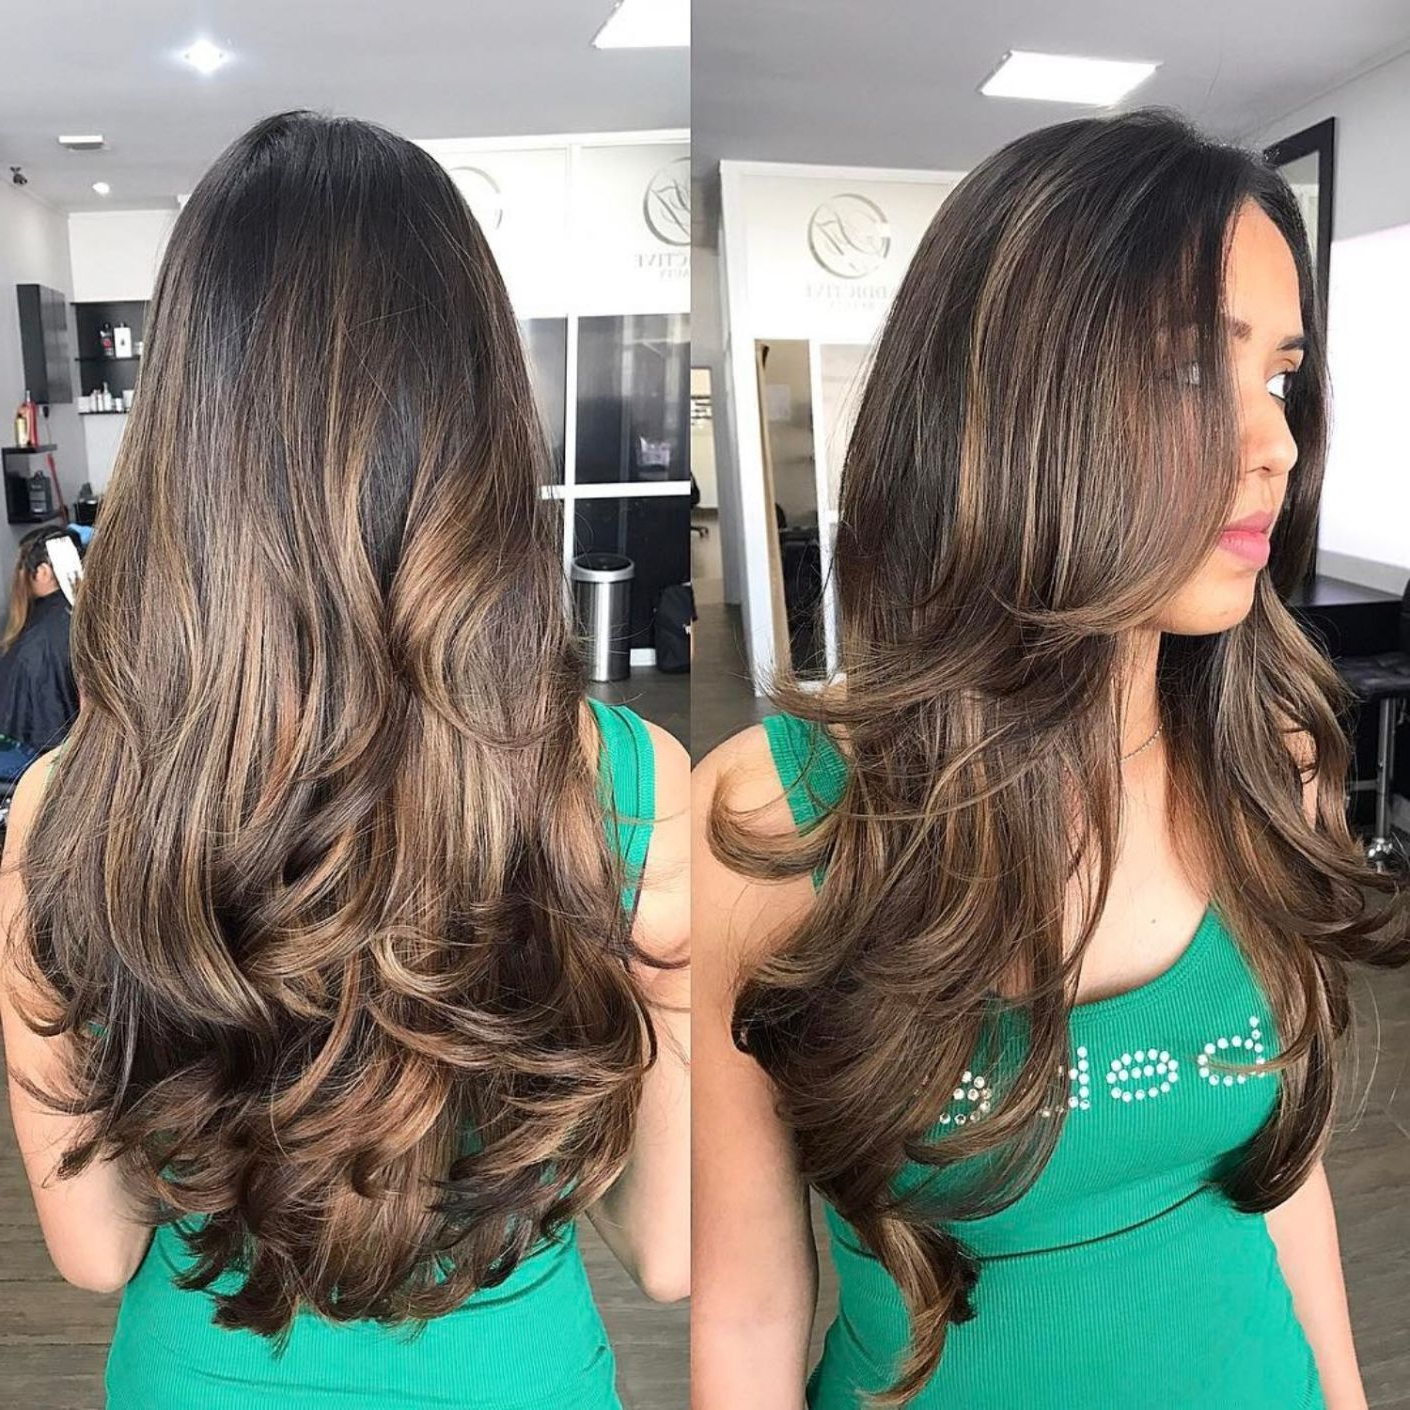 80 Cute Layered Hairstyles And Cuts For Long Hair In 2019 Inside Most Popular Extra Long Layered Haircuts For Thick Hair (Gallery 18 of 20)